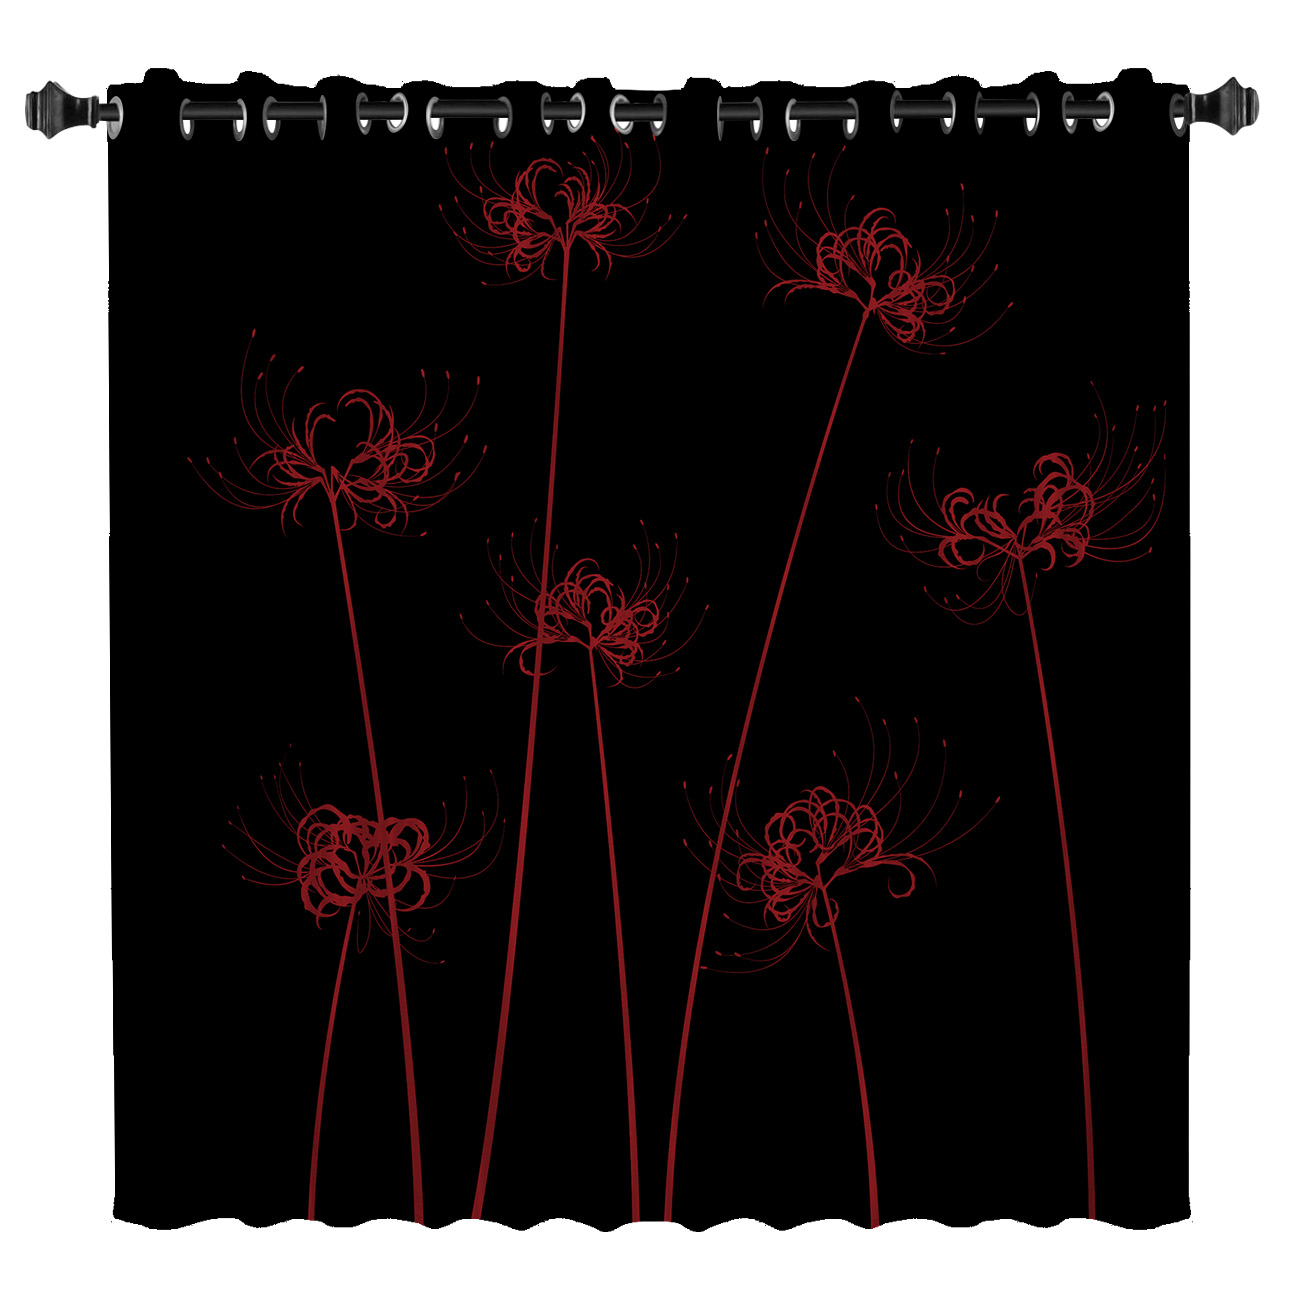 Lycoris Radiata Window Curtains Dark Window Blinds Living Room Outdoor Bedroom Indoor Kids Curtain Panels With Grommets Window